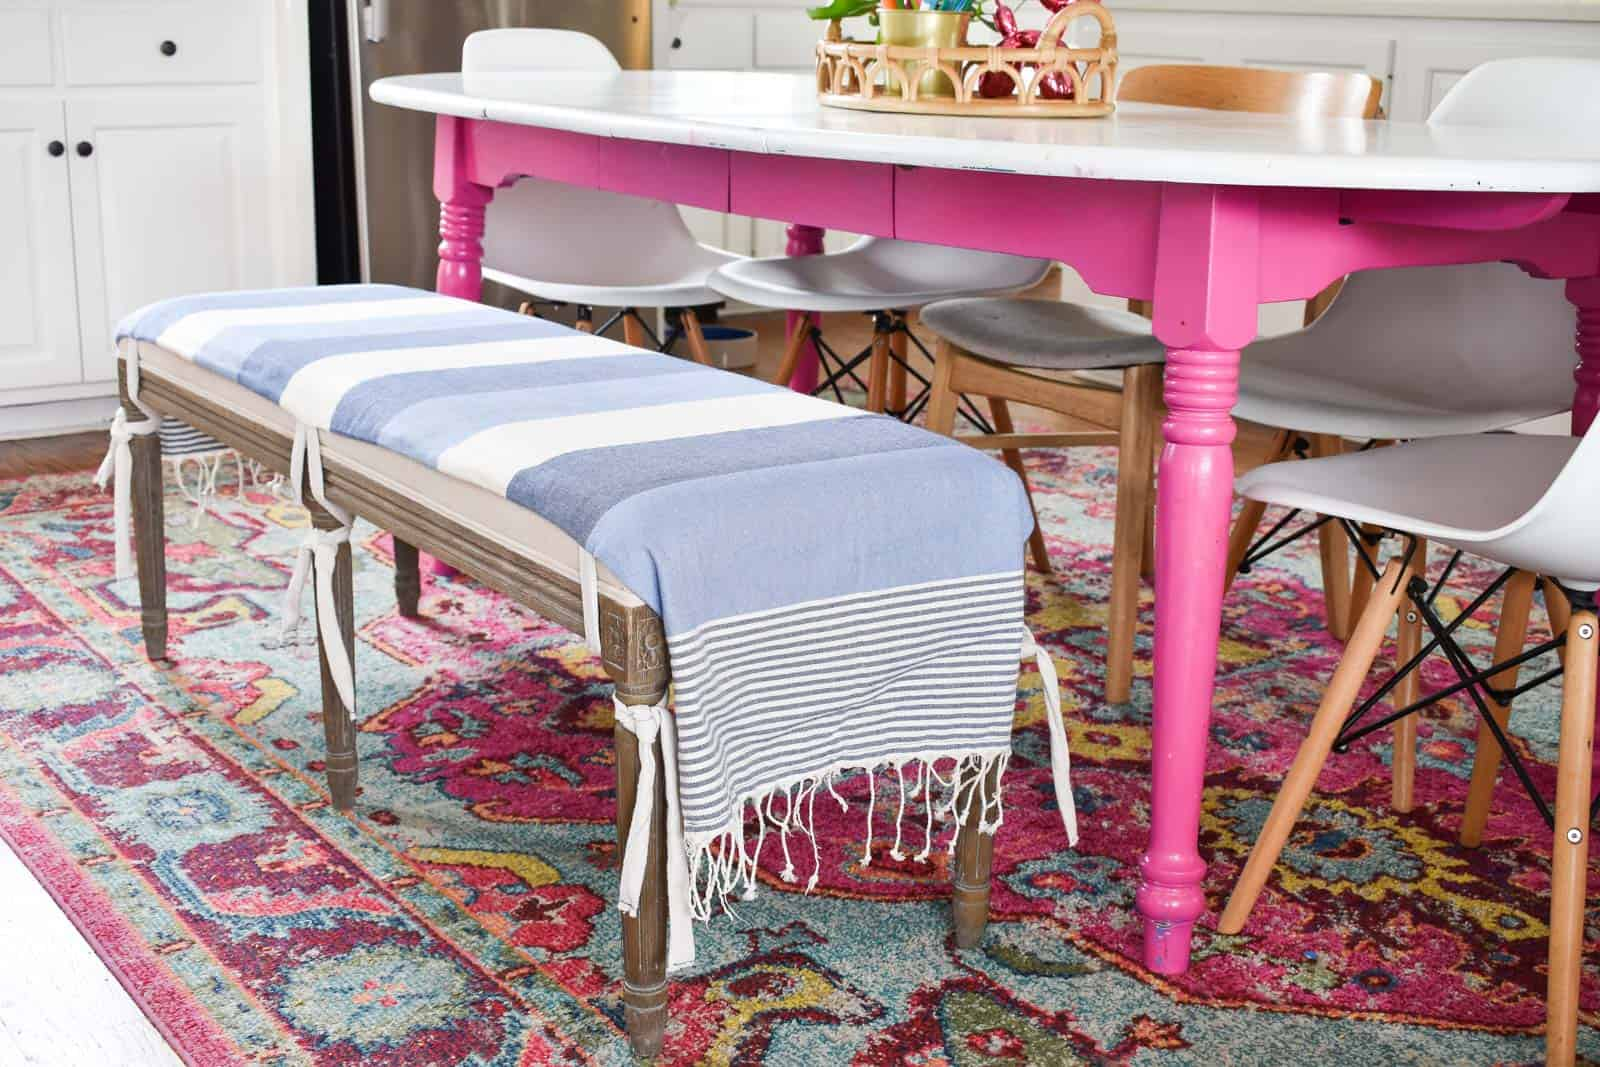 Stupendous Fabric Bench Seat Cover At Charlottes House Caraccident5 Cool Chair Designs And Ideas Caraccident5Info